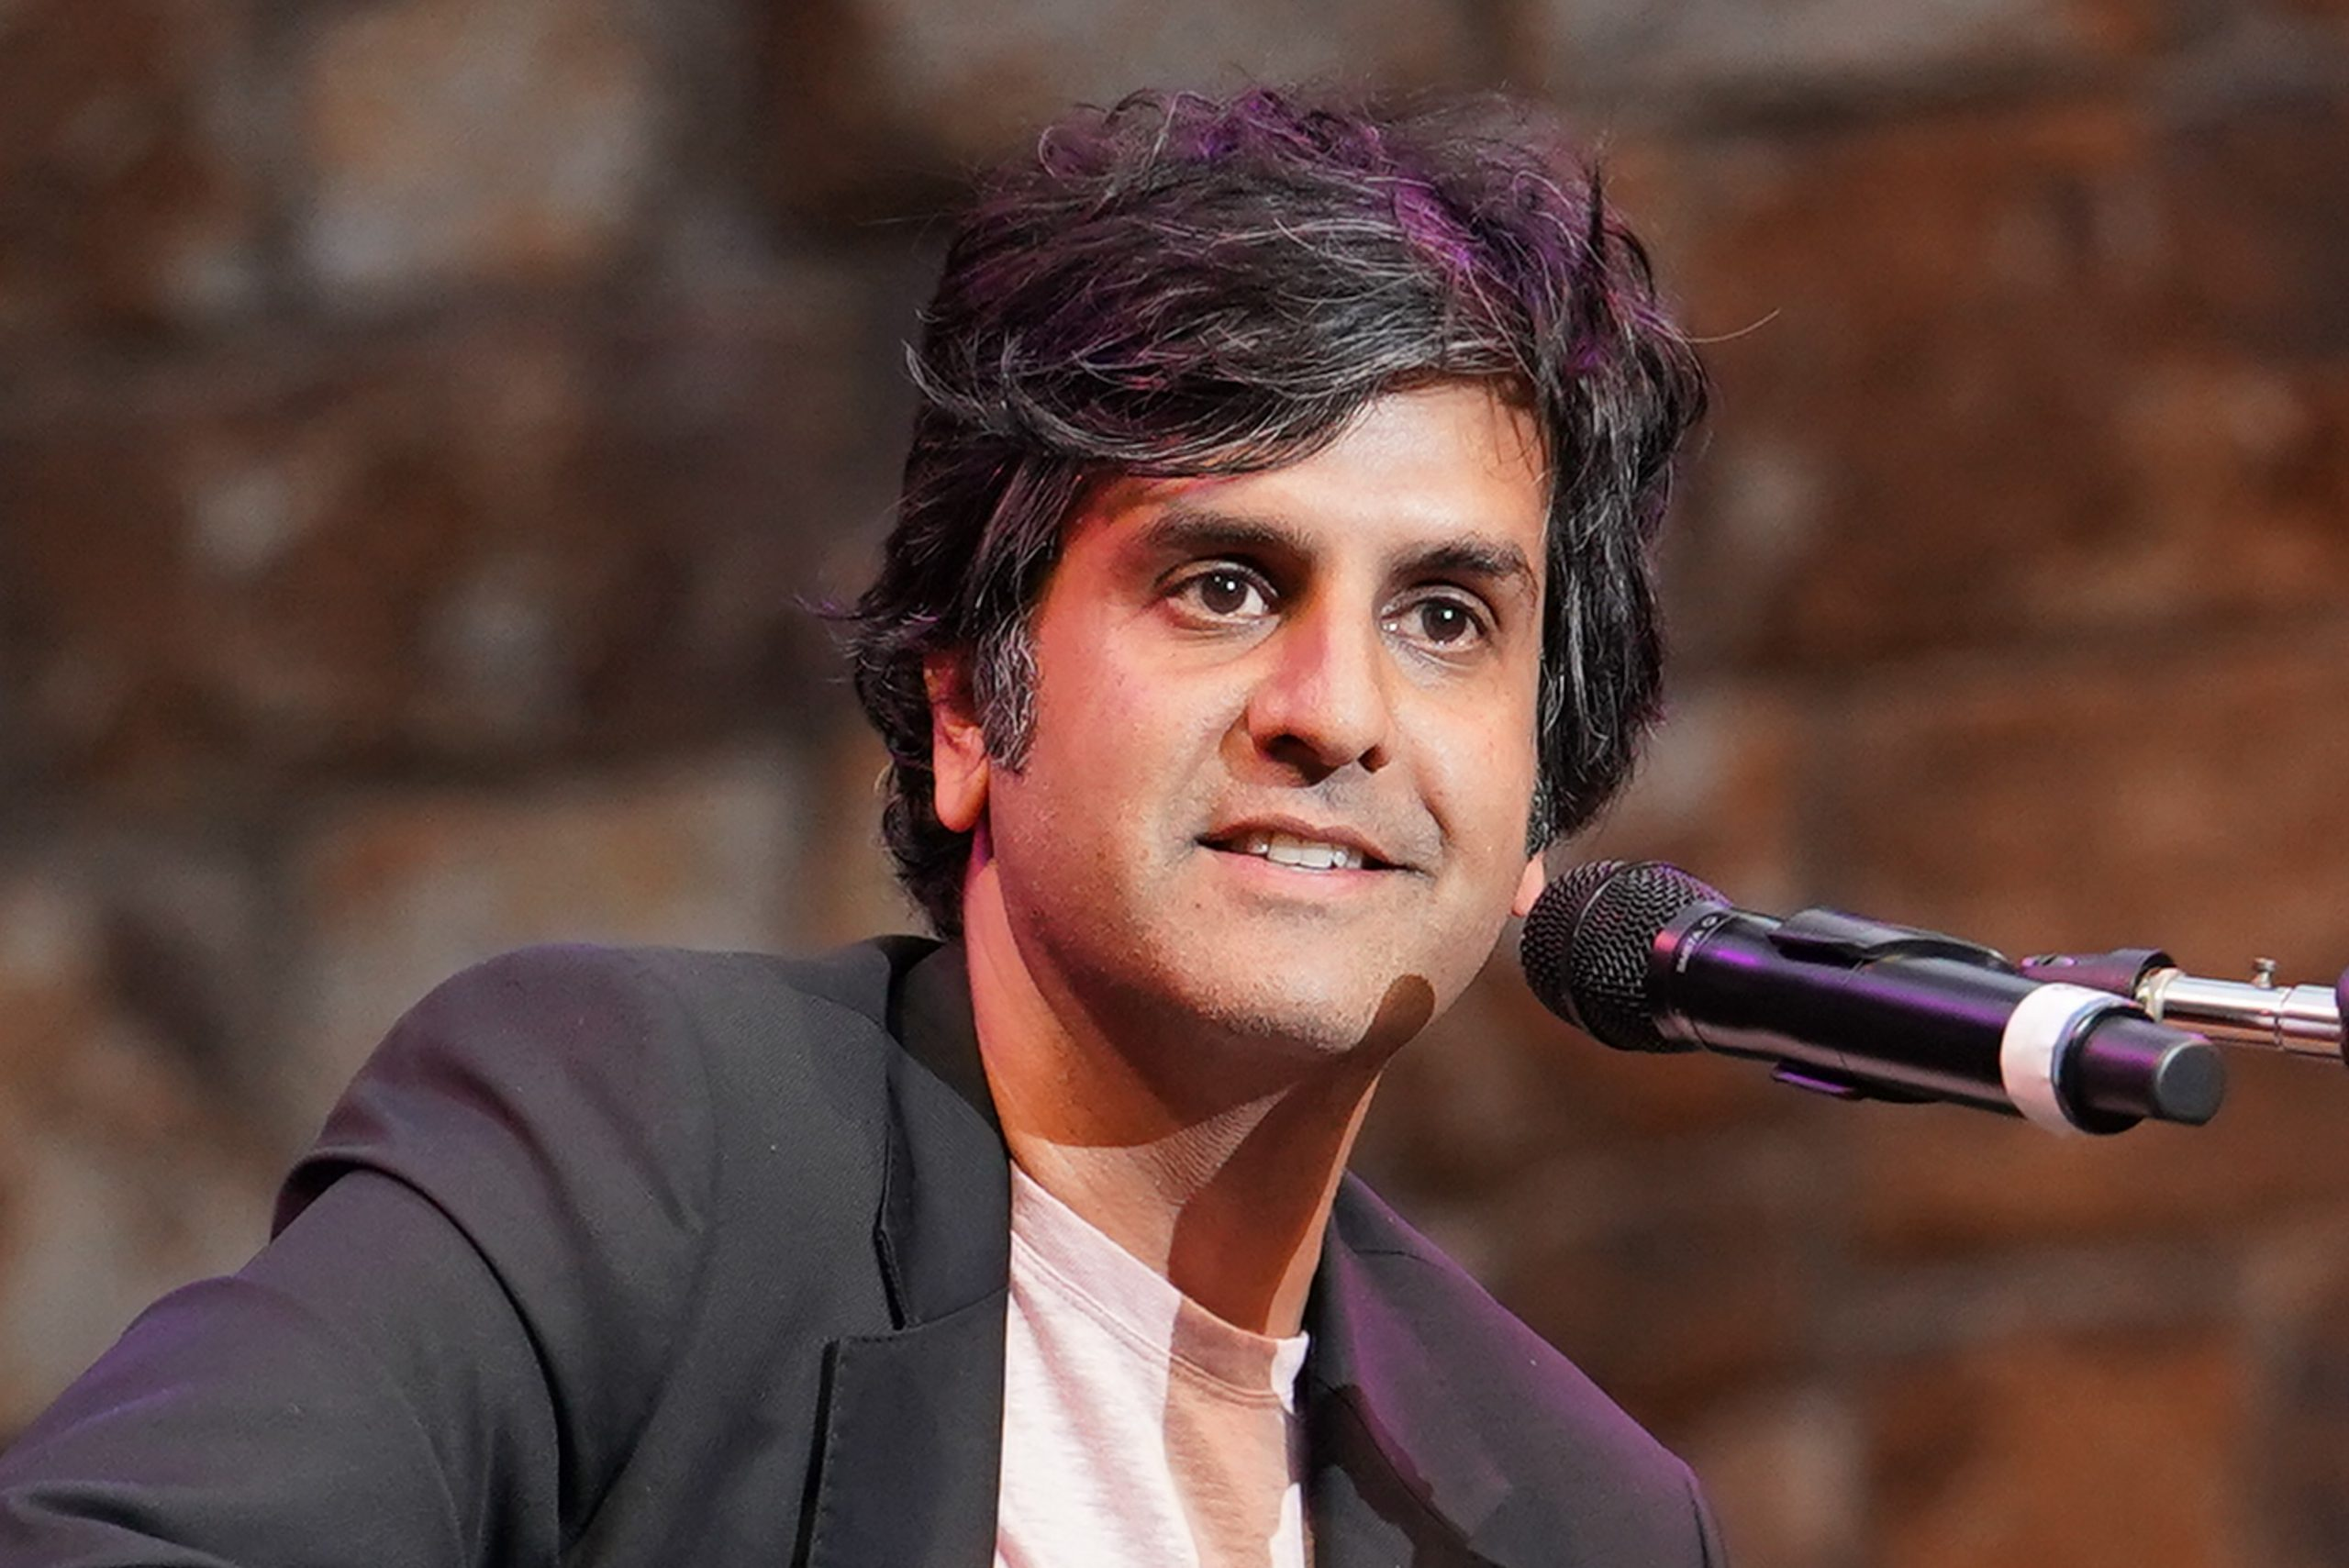 """Siddhartha Khosla performs at 20th Century Fox Television and NBC Present """"This Is Us"""" FYC Event at John Anson Ford Amphitheatre on June 06, 2019 in Hollywood, California. (Photo by Rachel Luna/Getty Images)"""